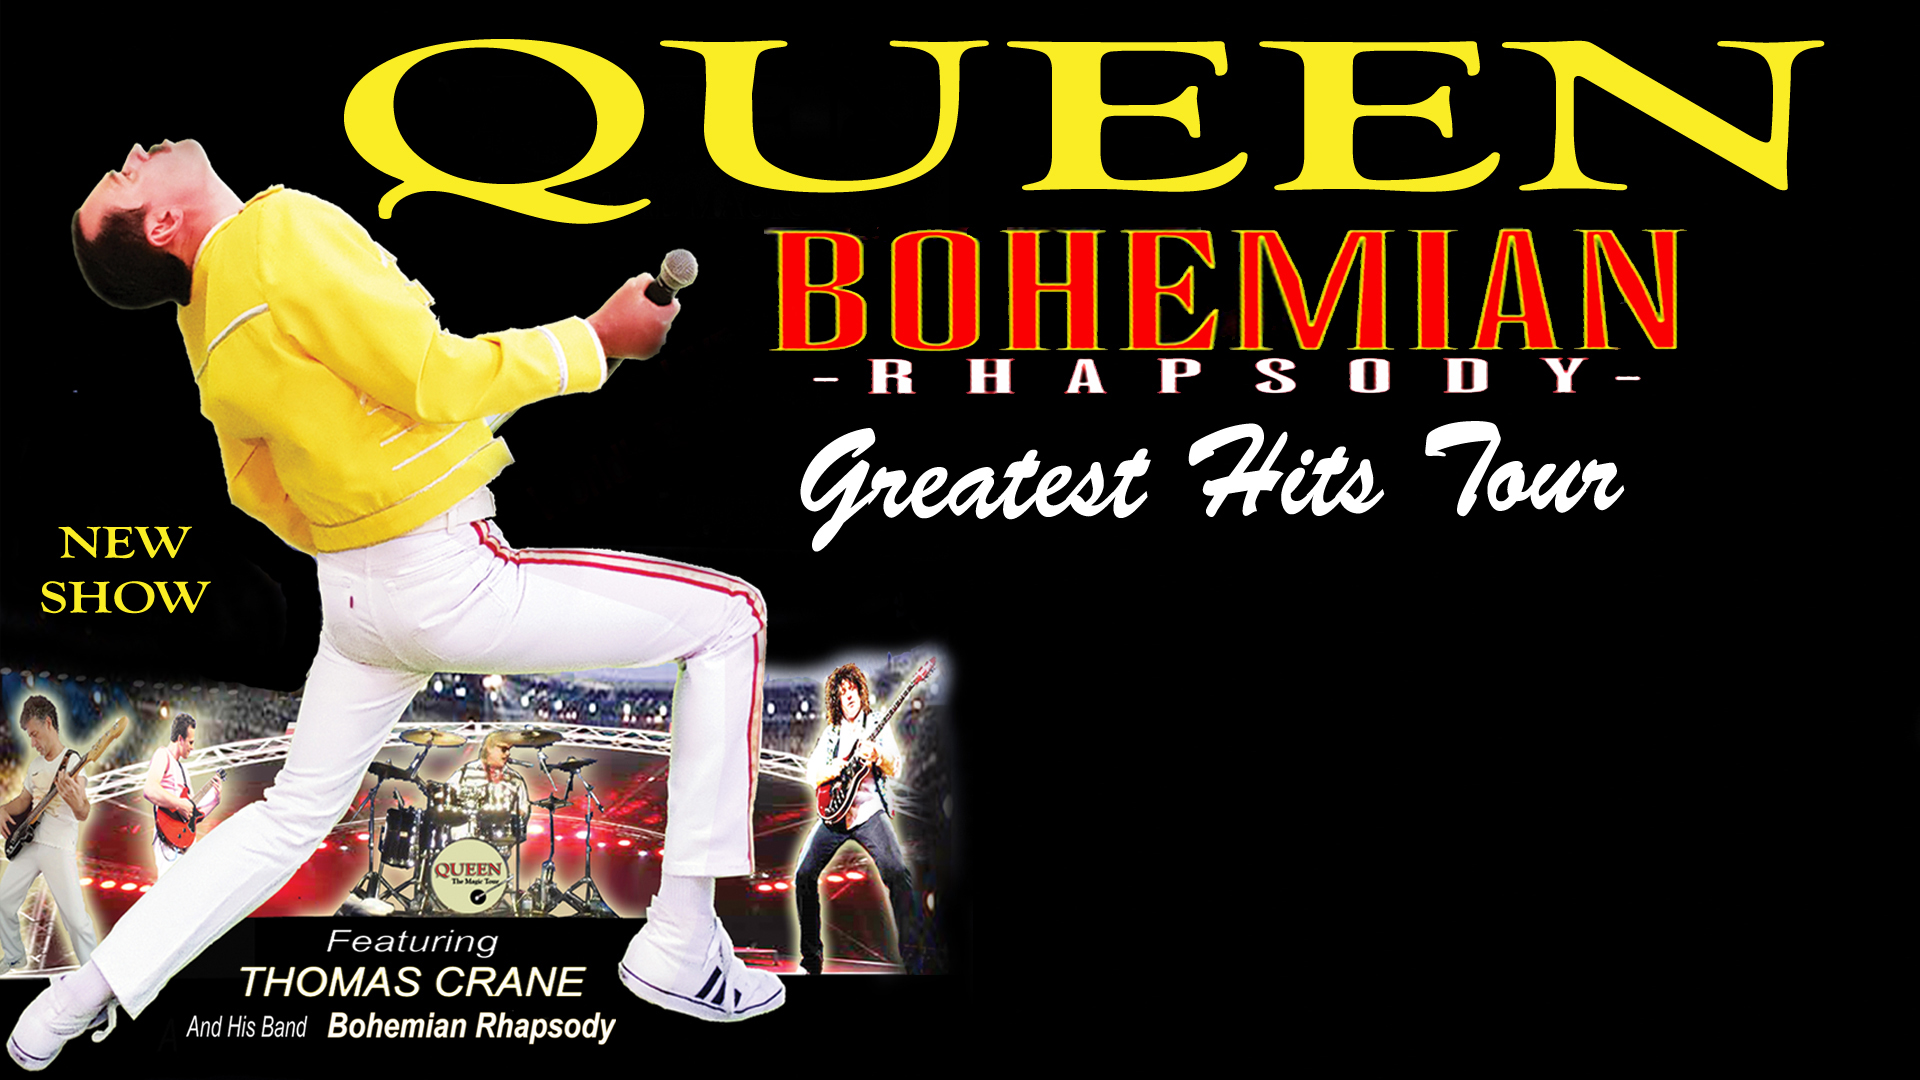 Queen Bohemian Rhapsody Greatest Hits Tour The Art House